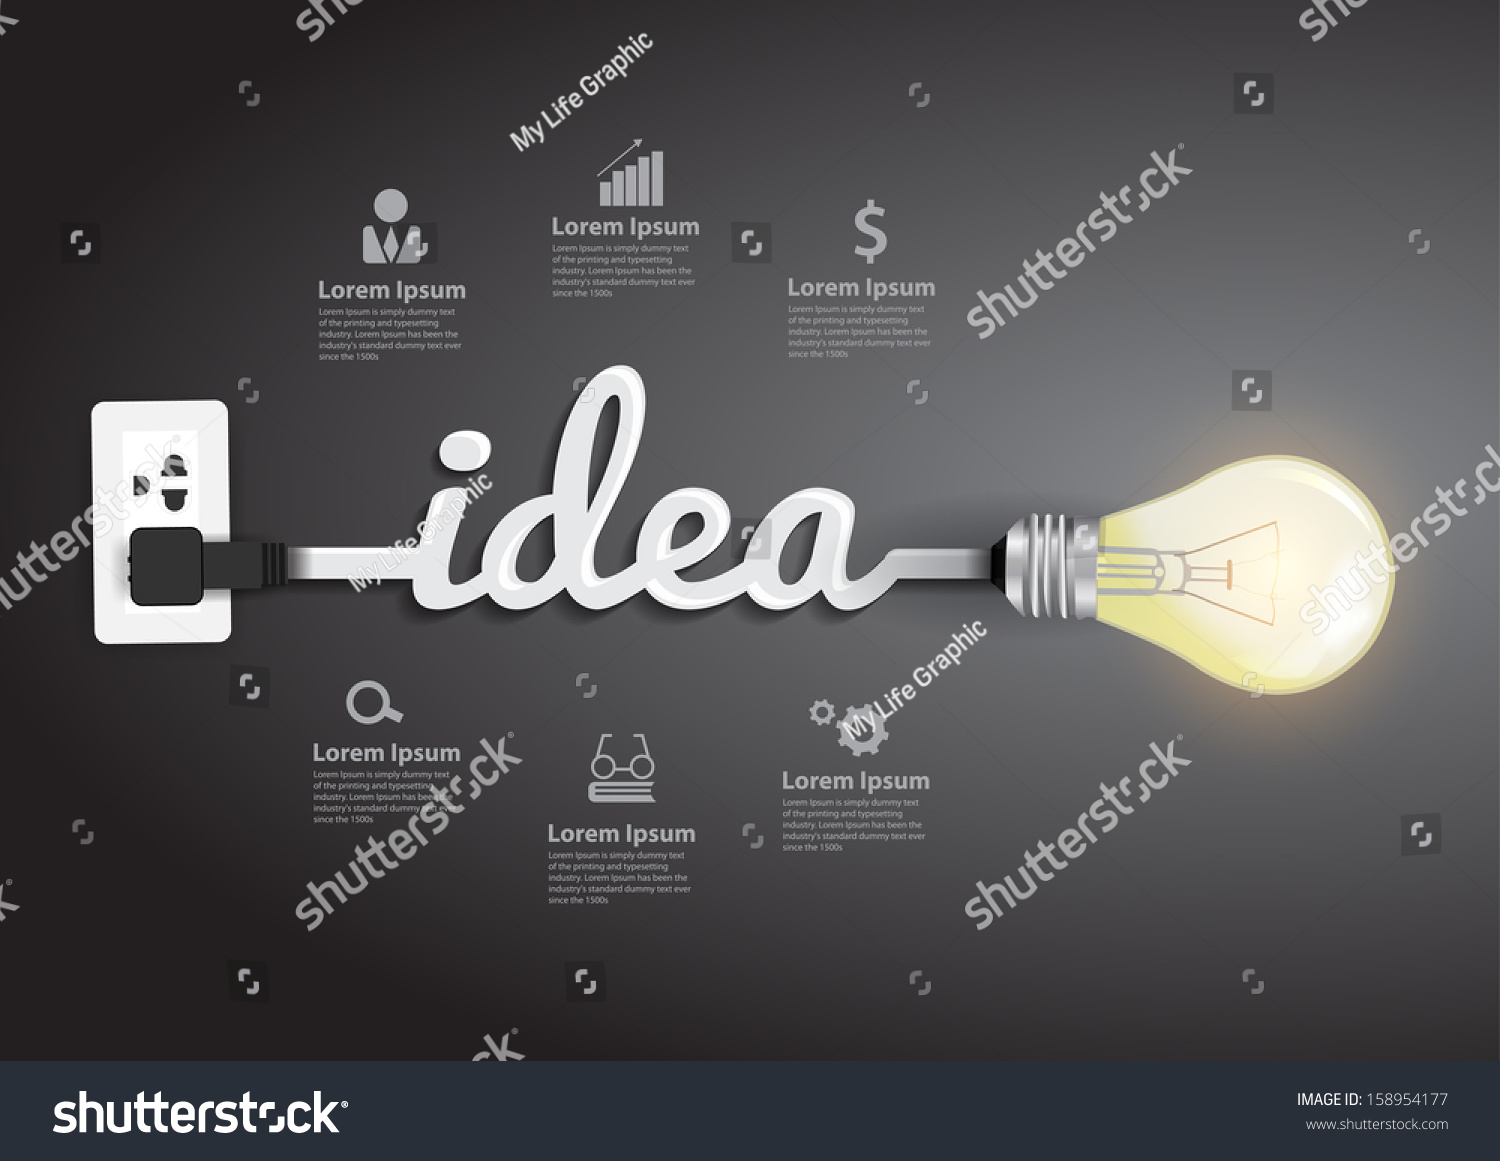 creative light bulb idea abstract infographic inspiration concept modern design template workflow layout diagram - Idea Design